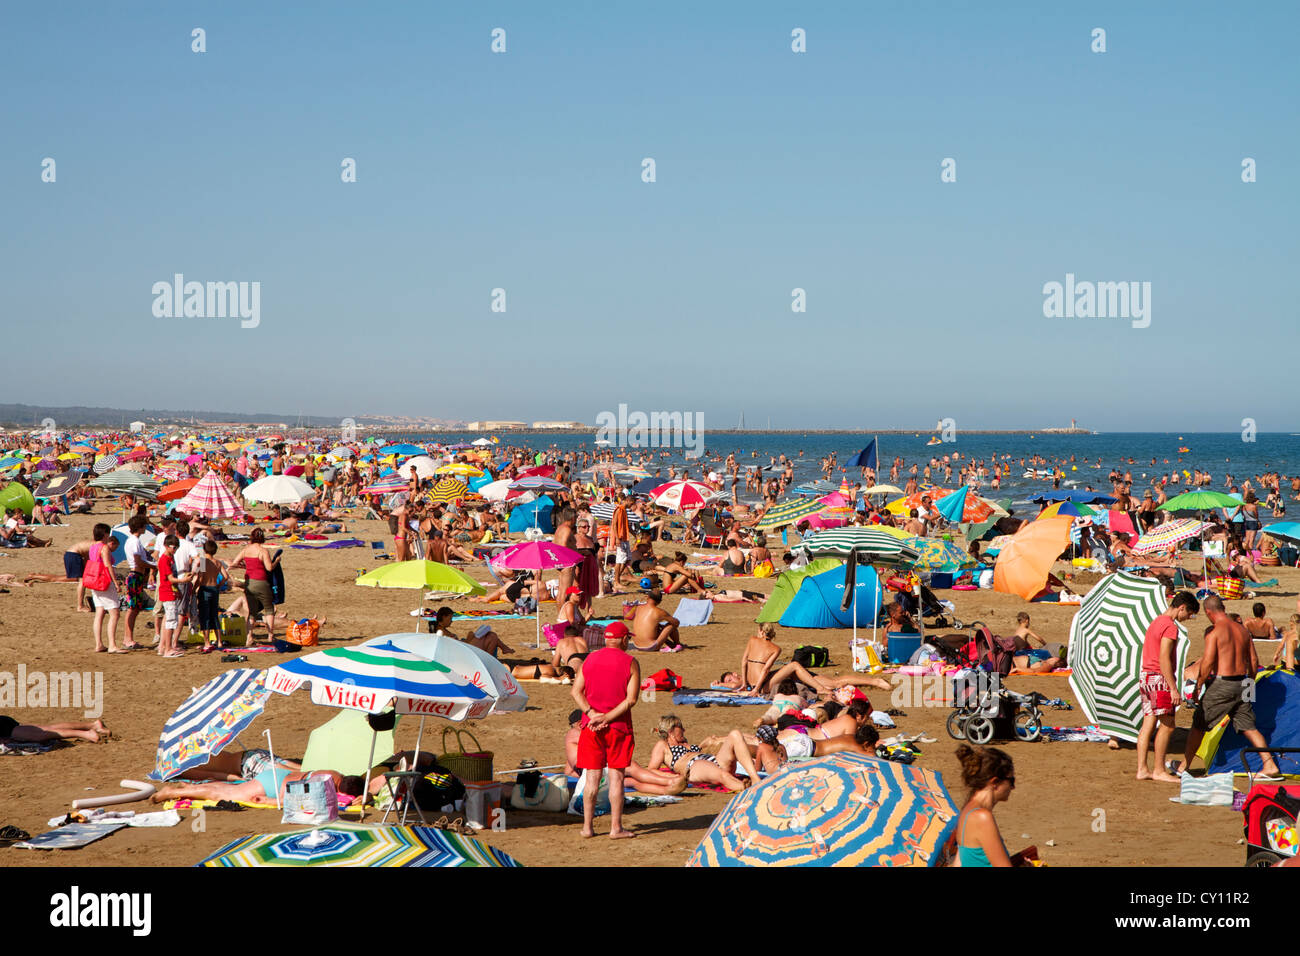 Gruissan Plage beach on a busy Summers day in Southern France - Stock Image